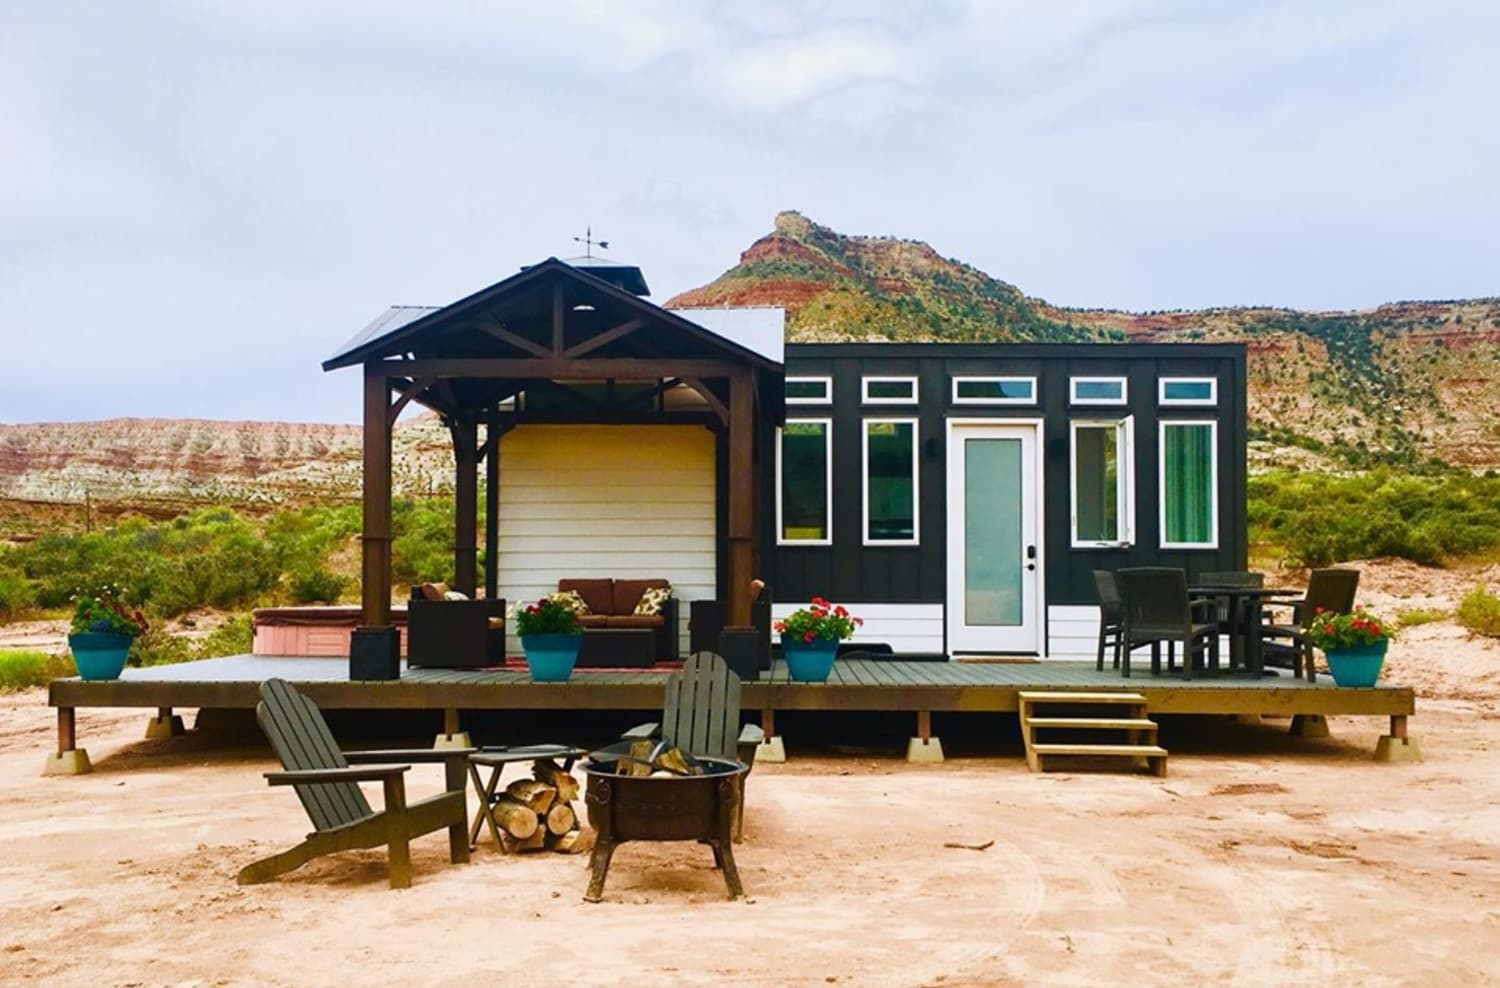 Live Large by Renting This Tiny House with a Private Hot Tub (Yes, You Read That Right)